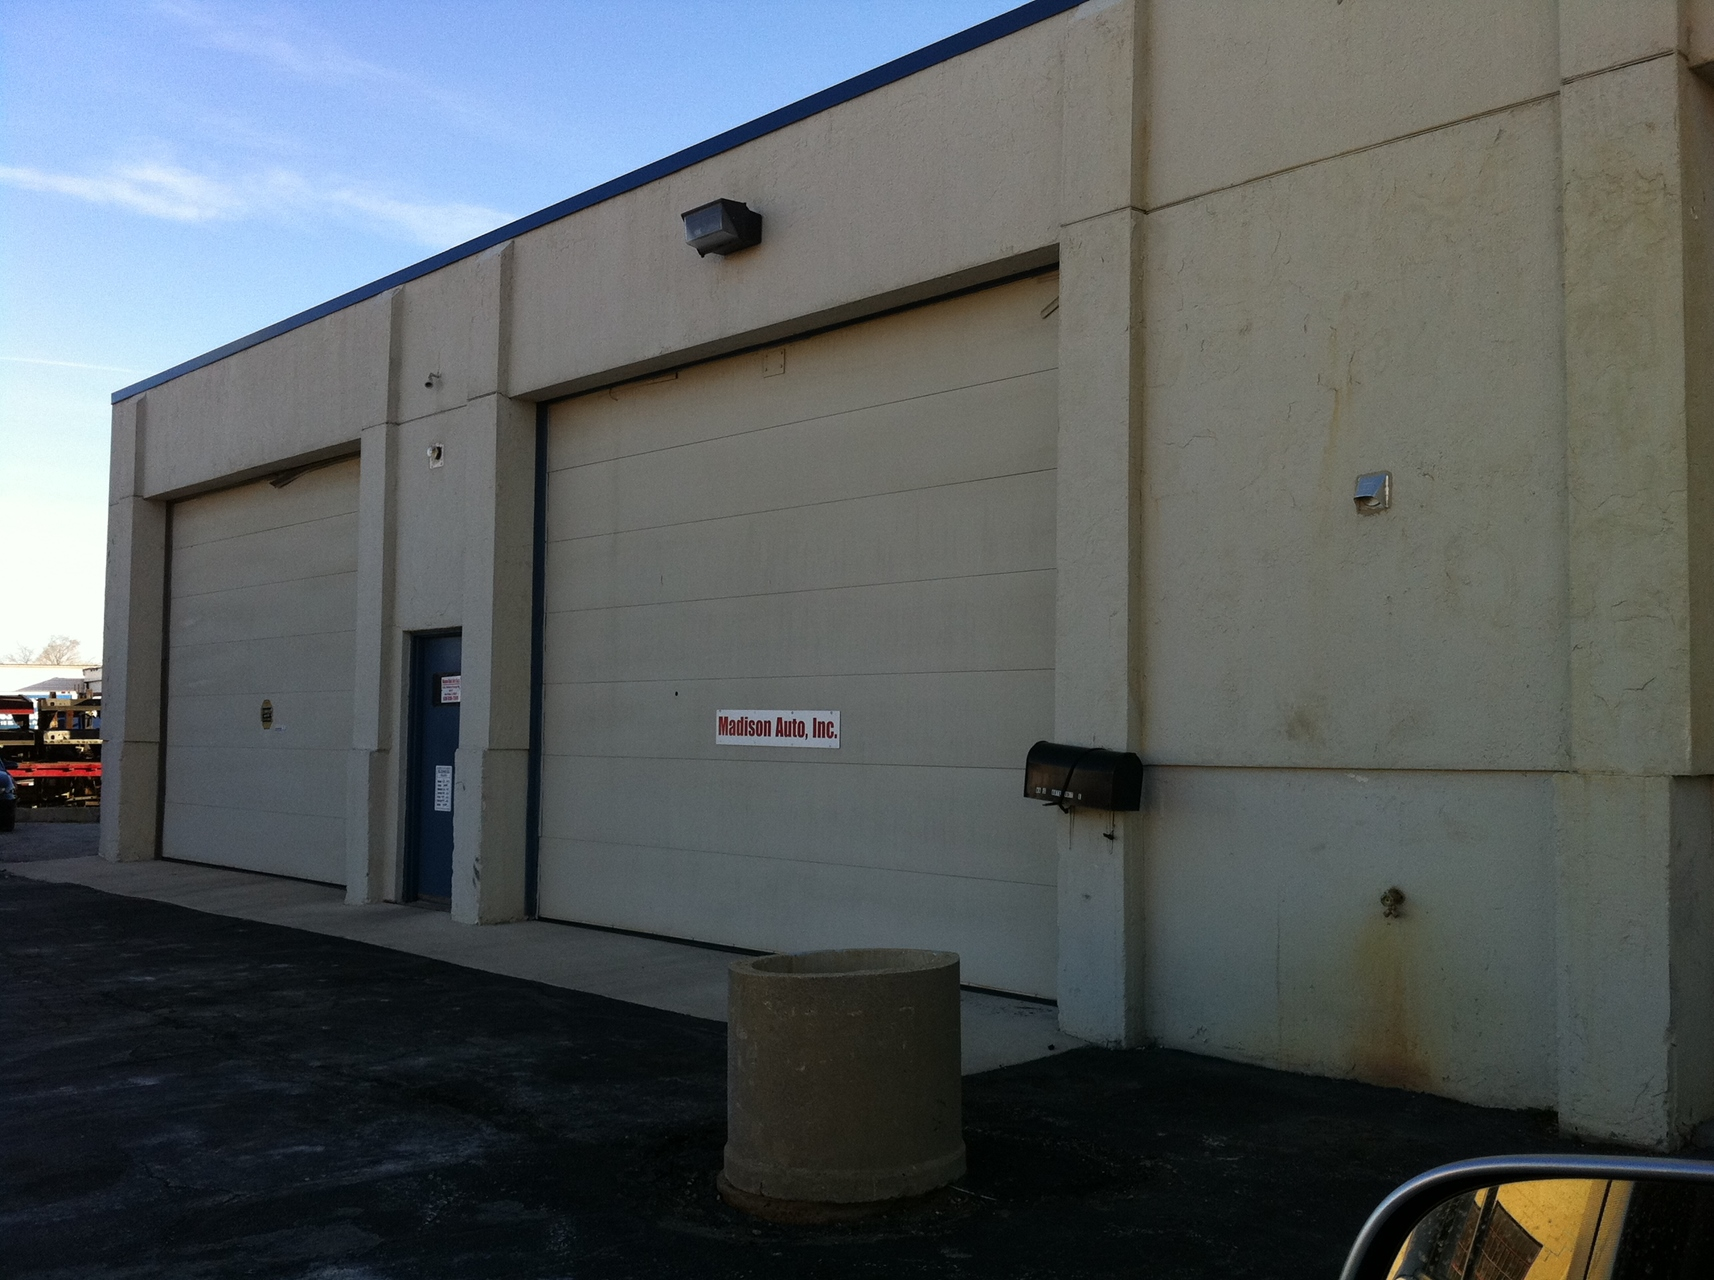 15W740 N. Frontage  I  Willowbrook, IL